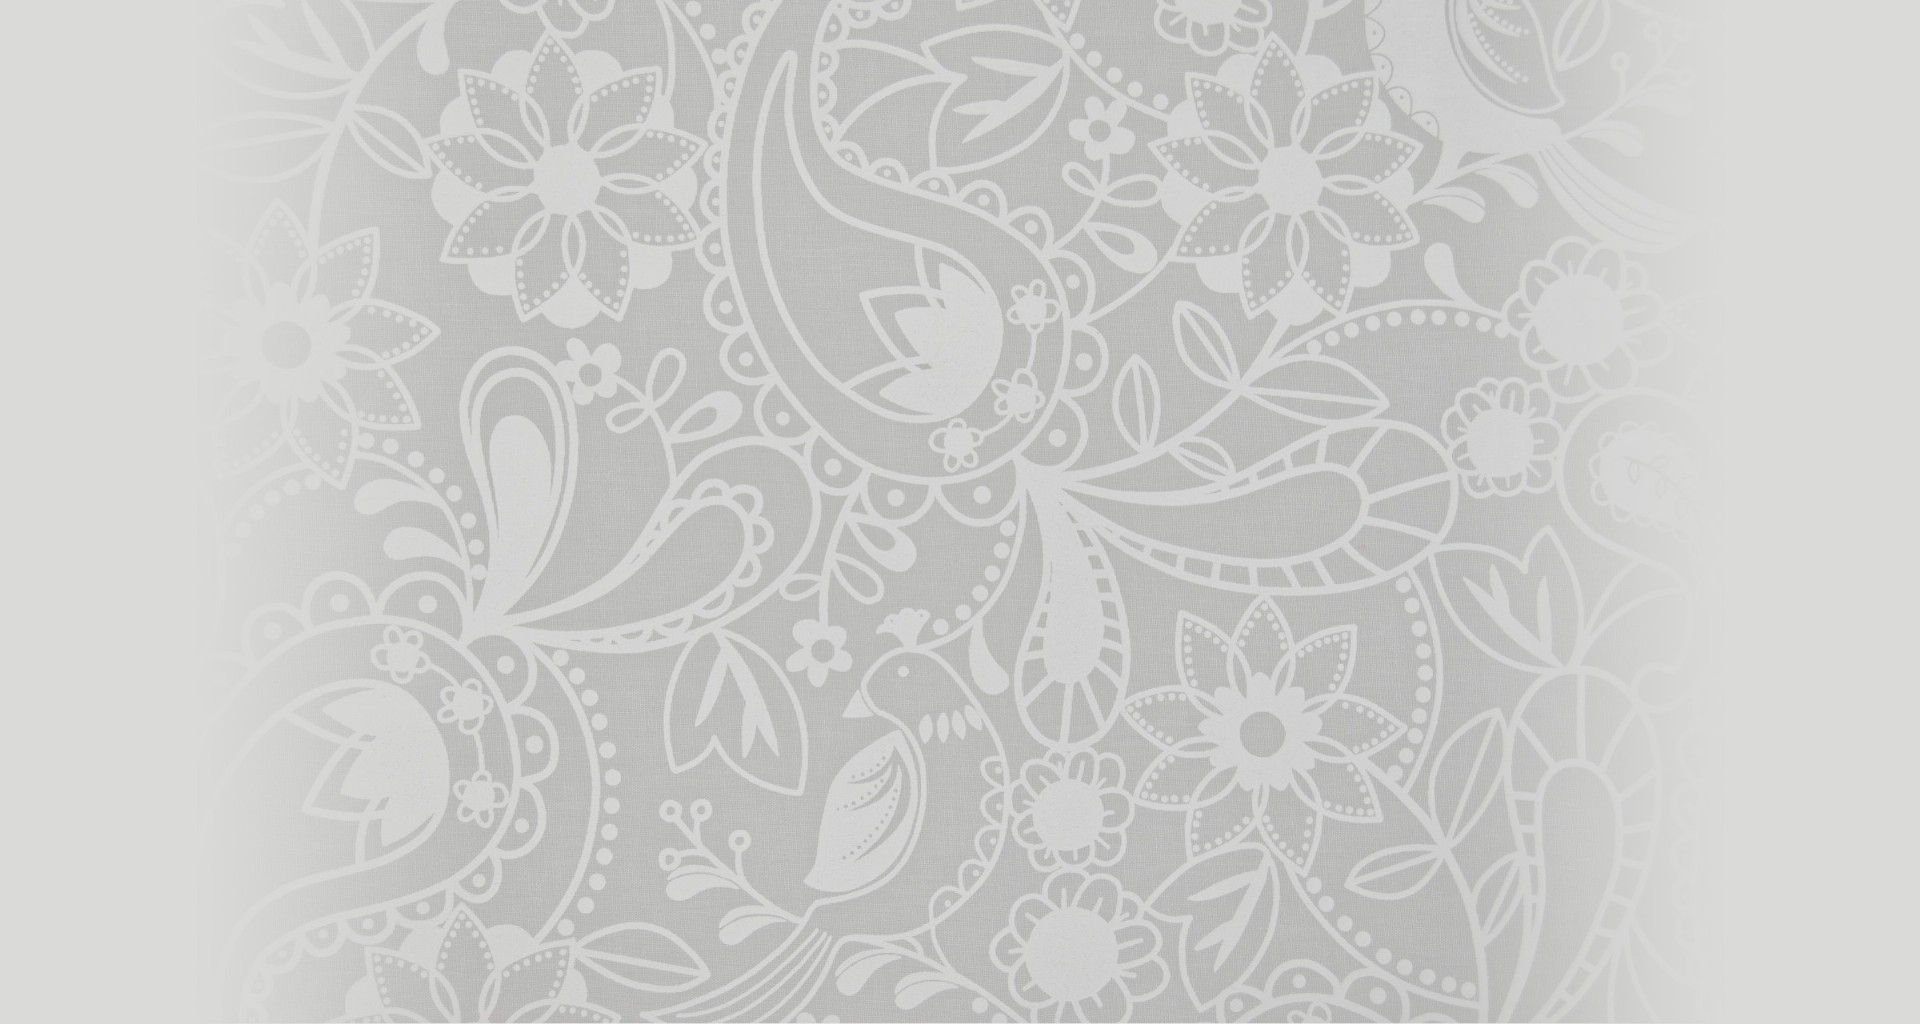 flowerpattern_6_scaled_LIGHTBOX.jpg